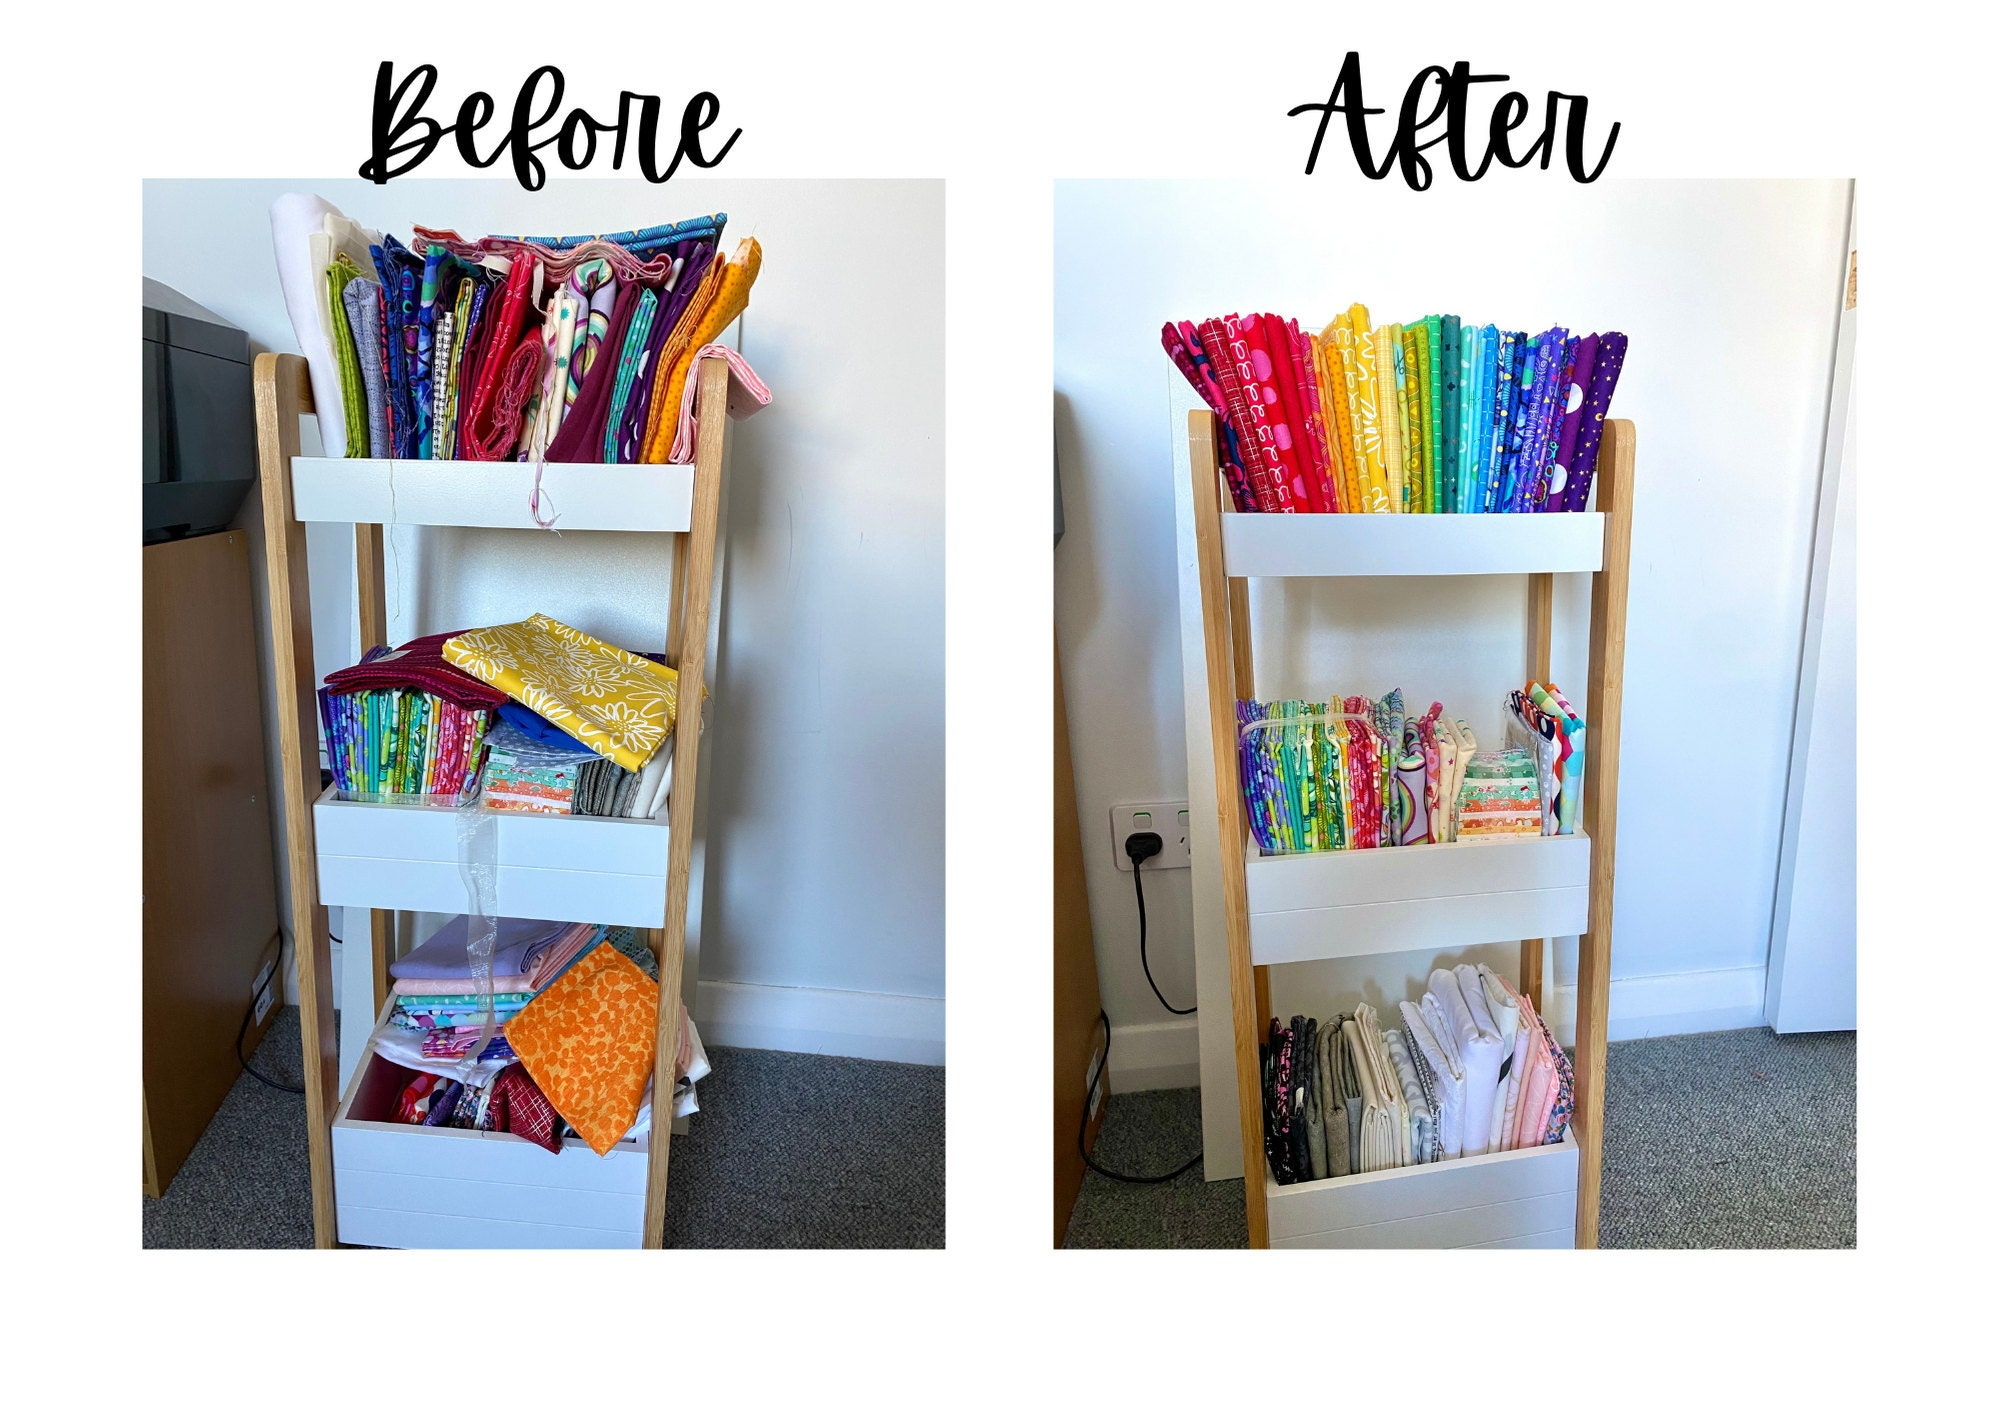 Photos of my own quilting fabric stash, before I organised it and after it has been tidied up and arranged into a pretty rainbow.